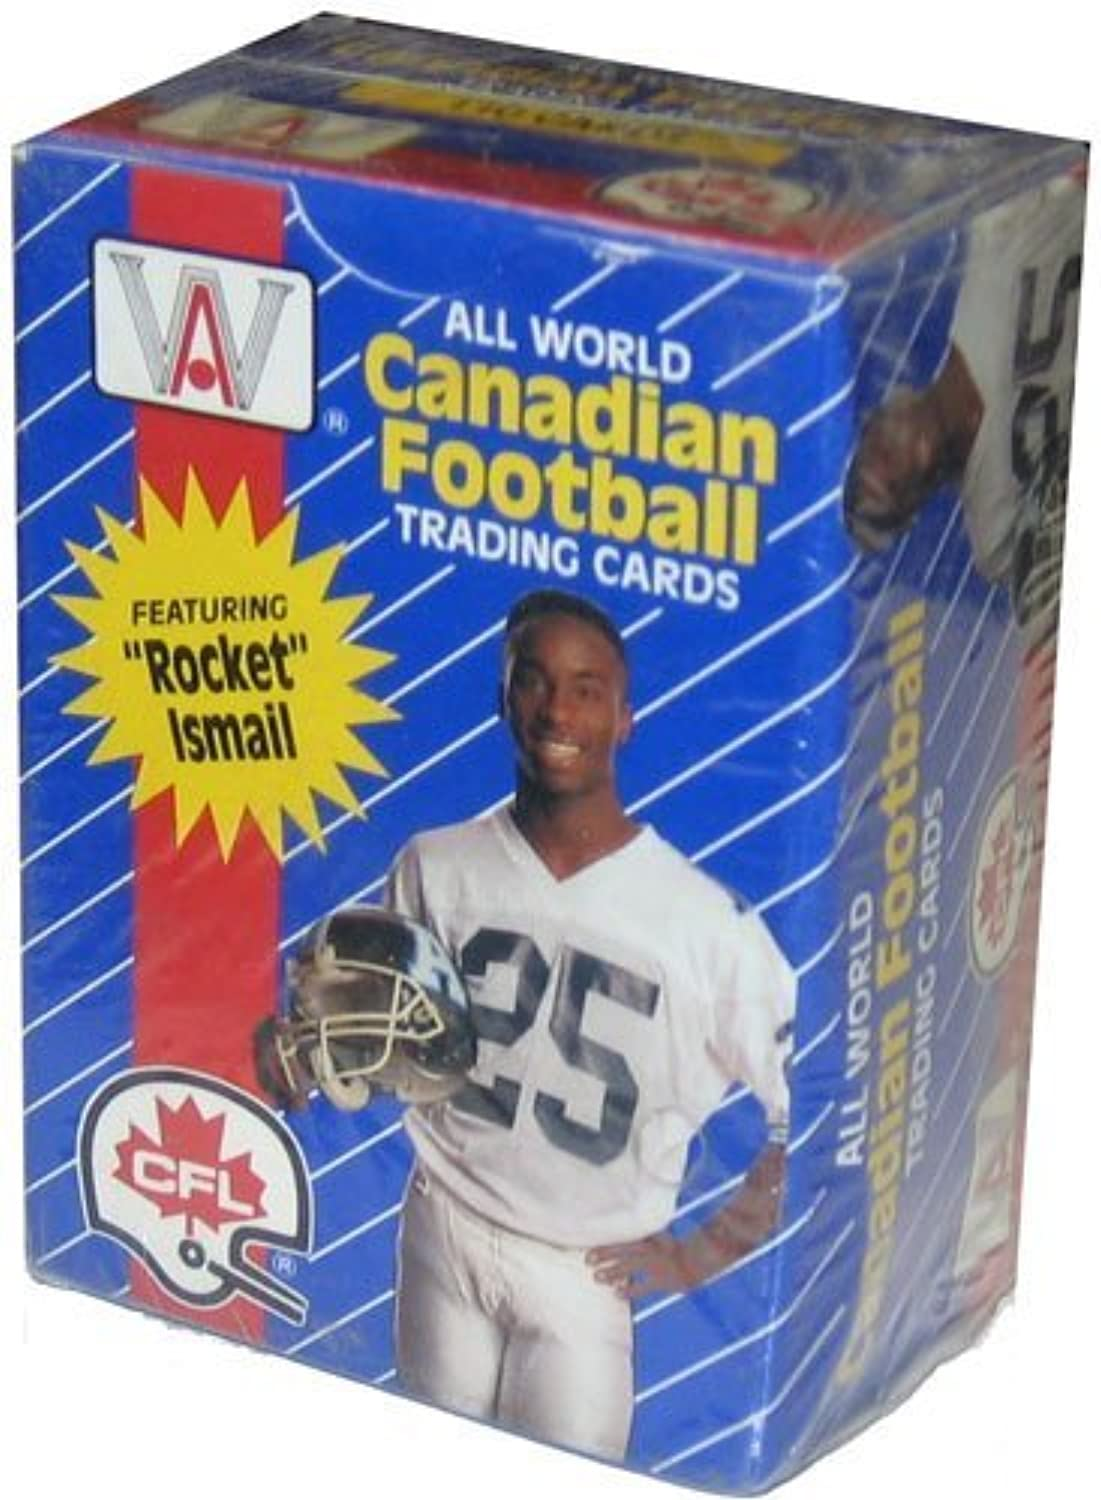 All World Canadian Football Cards, 1991 CFL 110 Card Set in Box by AW